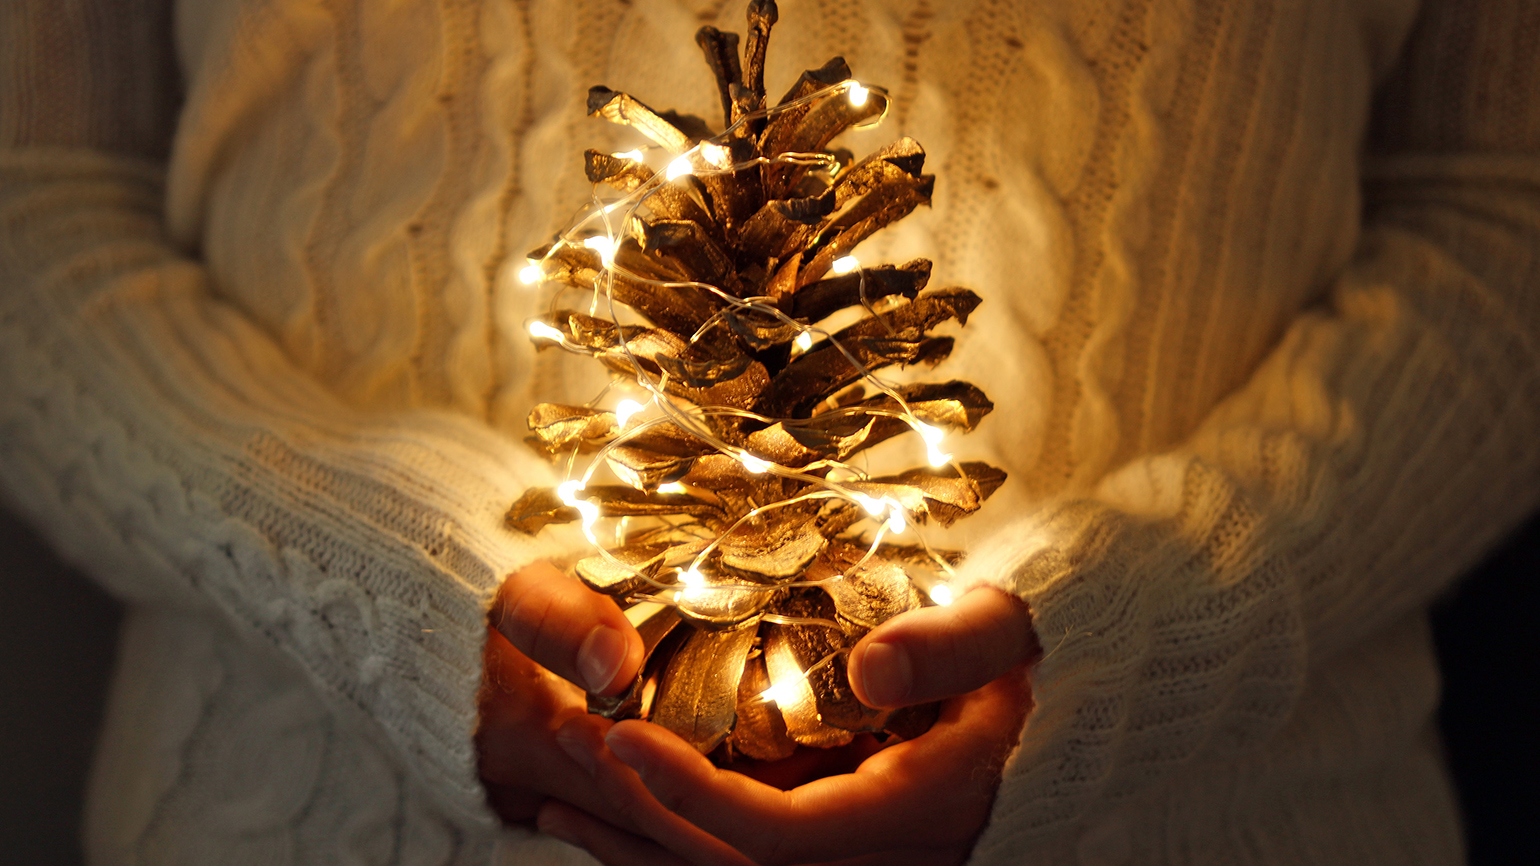 A woman's hands hold a large pine cone decorated like a Christmas tree